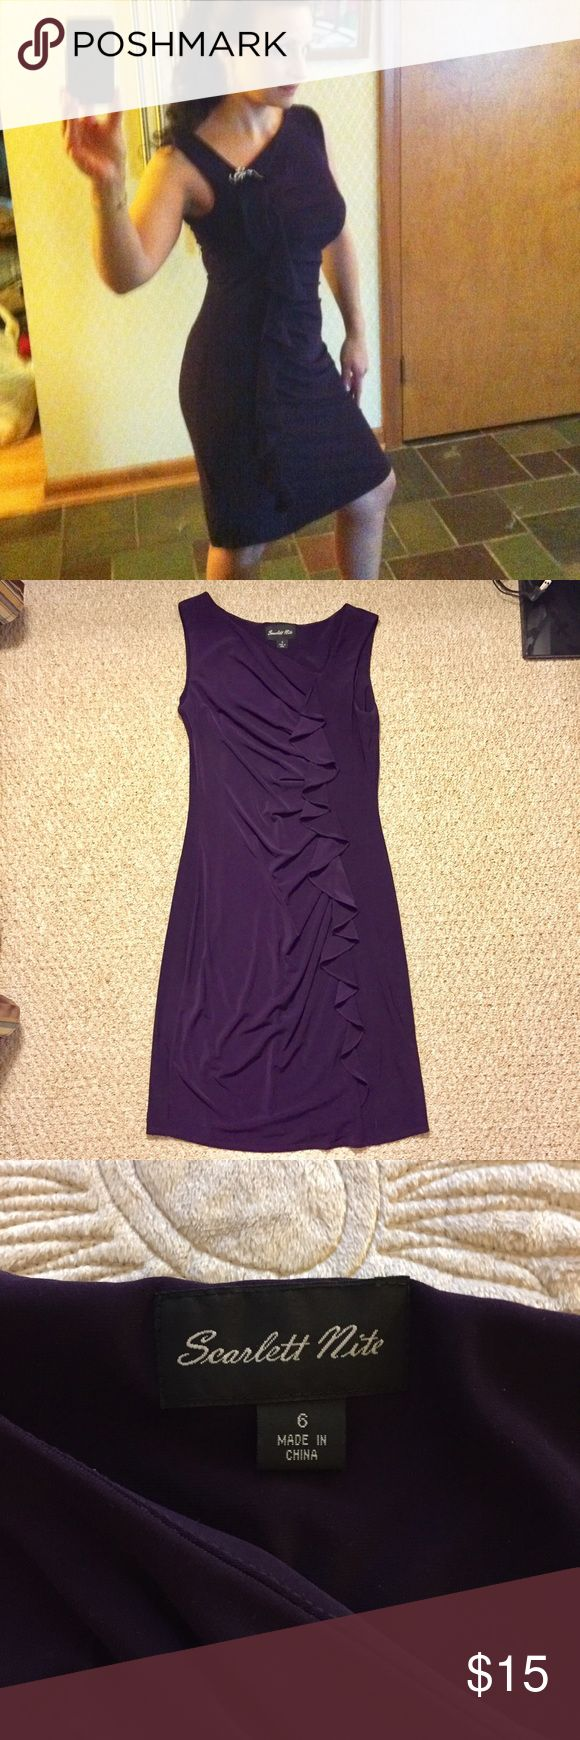 Purple Cocktail Dress Worn once for a wedding. Pin shown in first pic not included. Sideways ruffle detail along length of dress. 95% Polyester, 5% Spandex. Machine wash Cold. Tumble dry low. Dresses